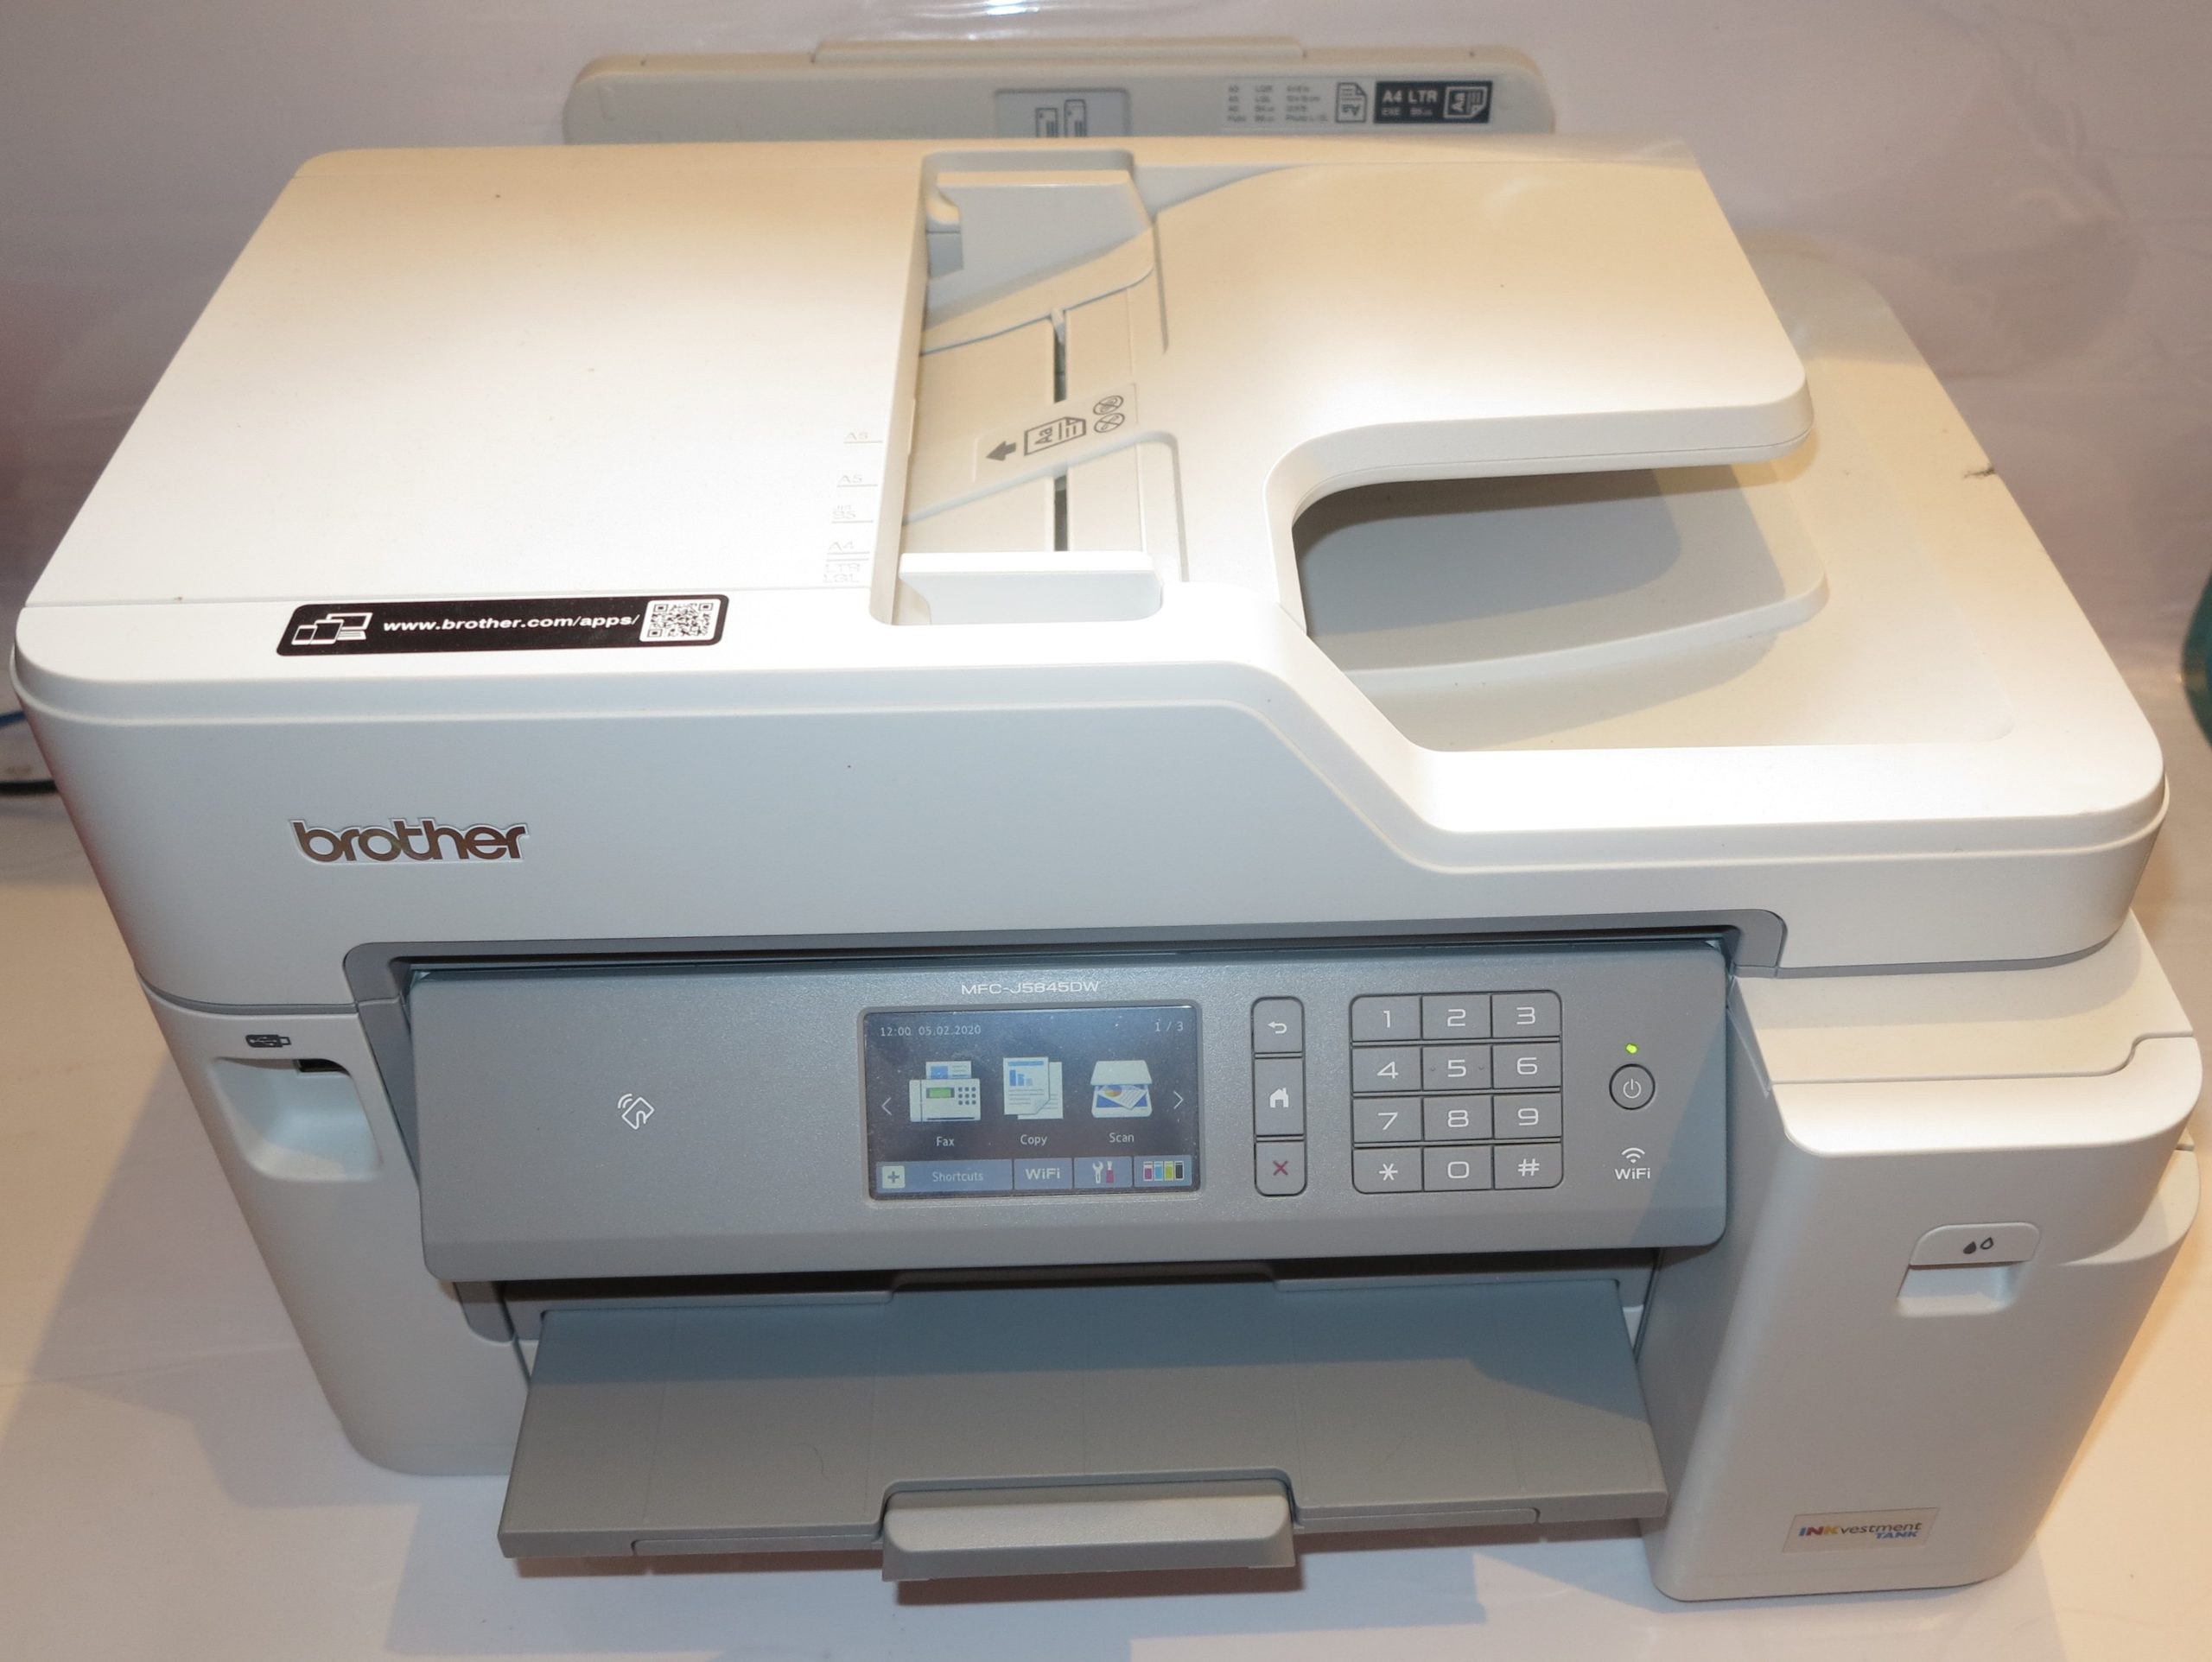 Brother MFC-J5845DW INKVestment multifunction inkjet printer